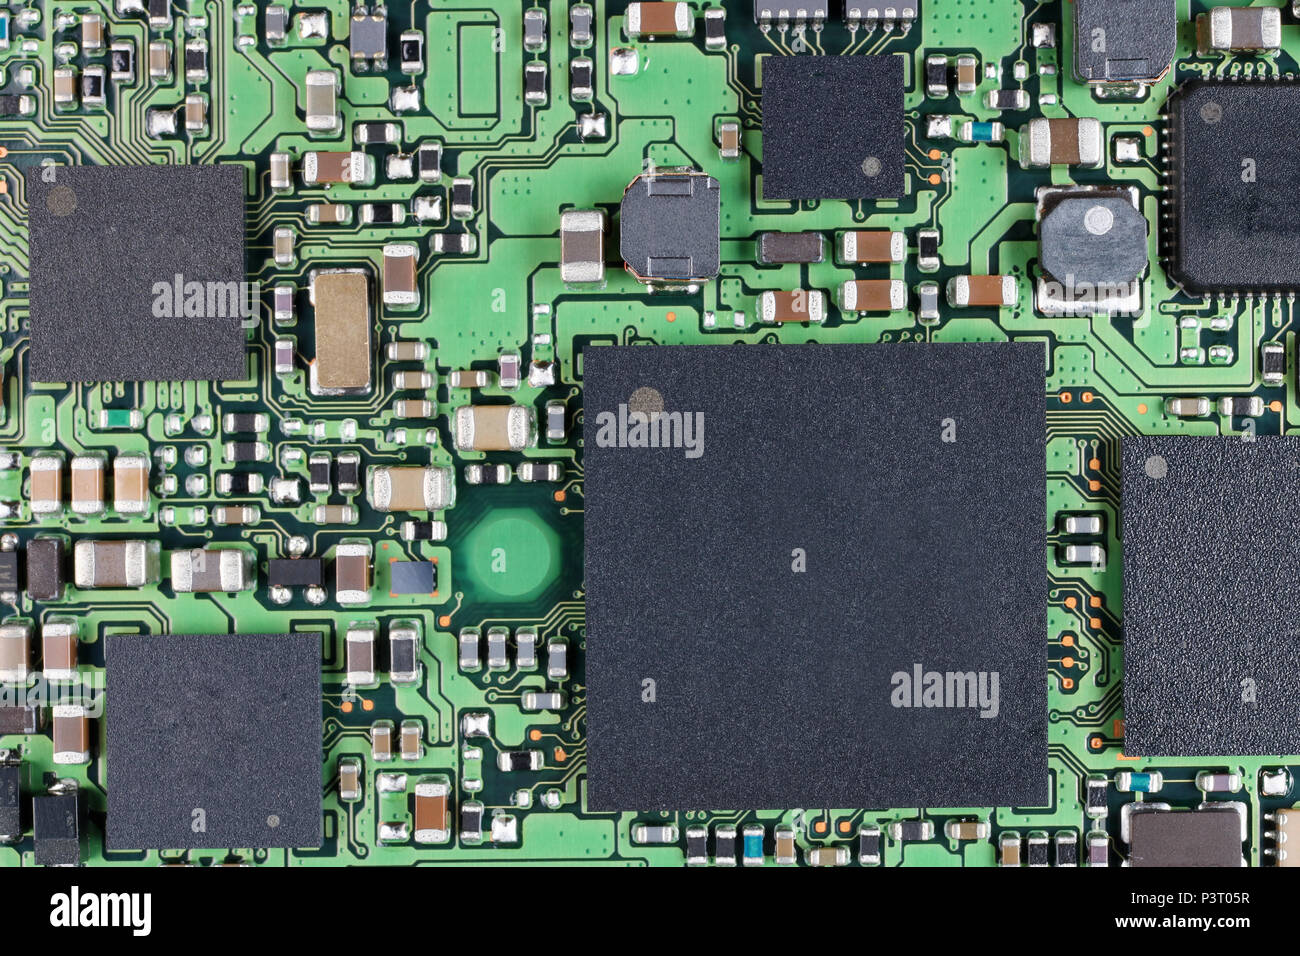 Smd Chip Stock Photos Images Alamy Drawing Modern Electronic Circuit Security Concept Of Electronics Microchips And Microcircuits With Ball Pins Are Installed On A Board Super